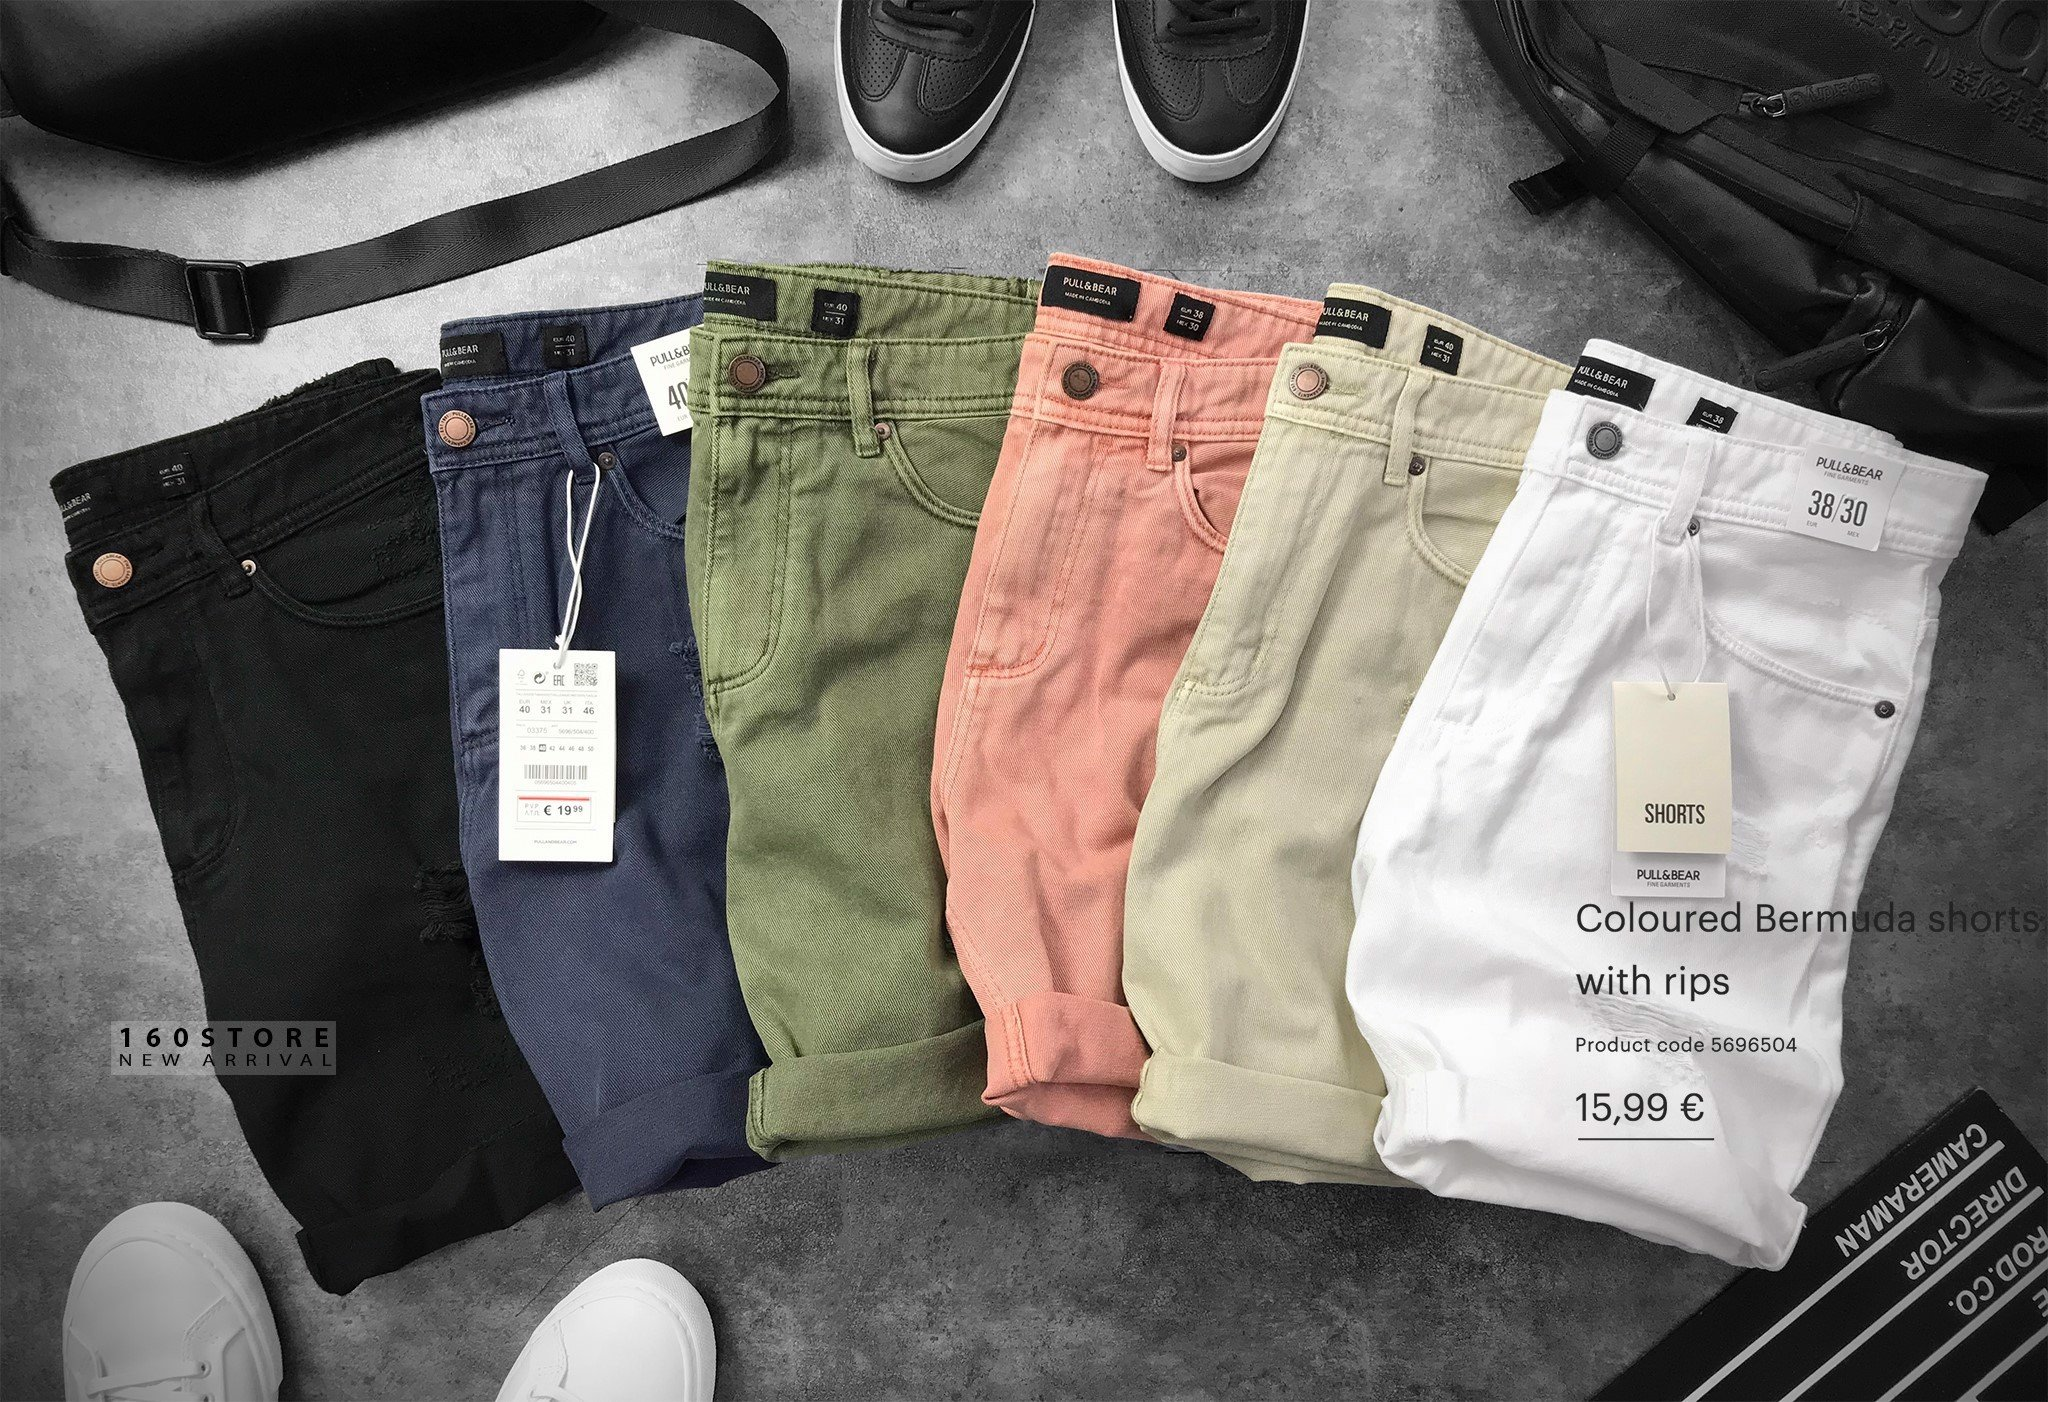 P.&.B Coloured Bermuda Shorts